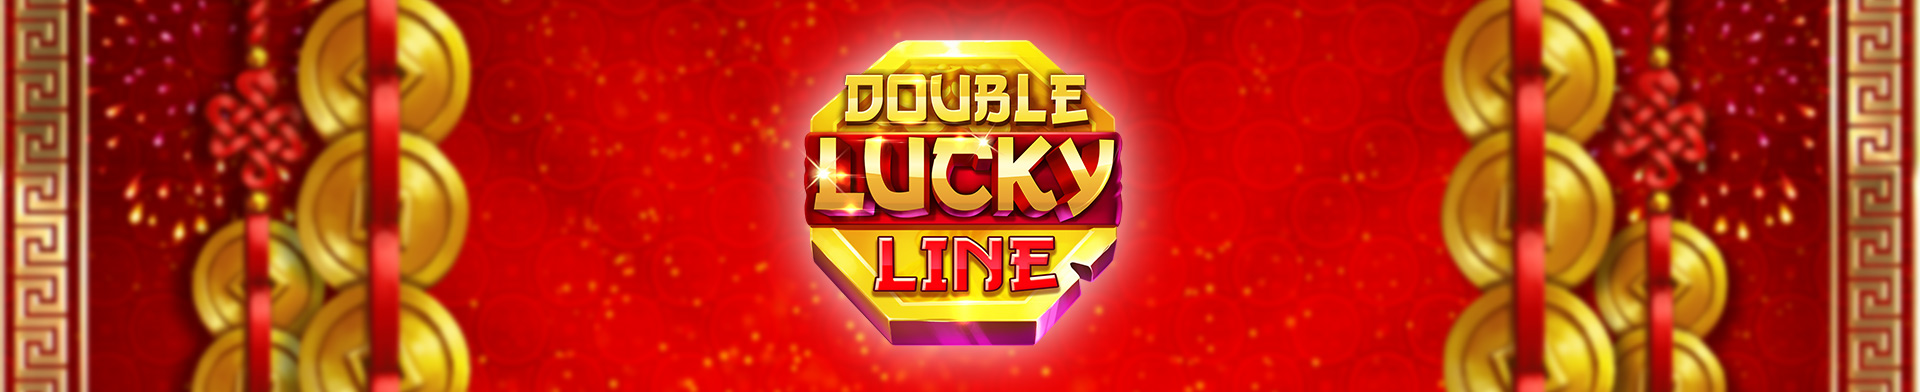 Double lucky line banner